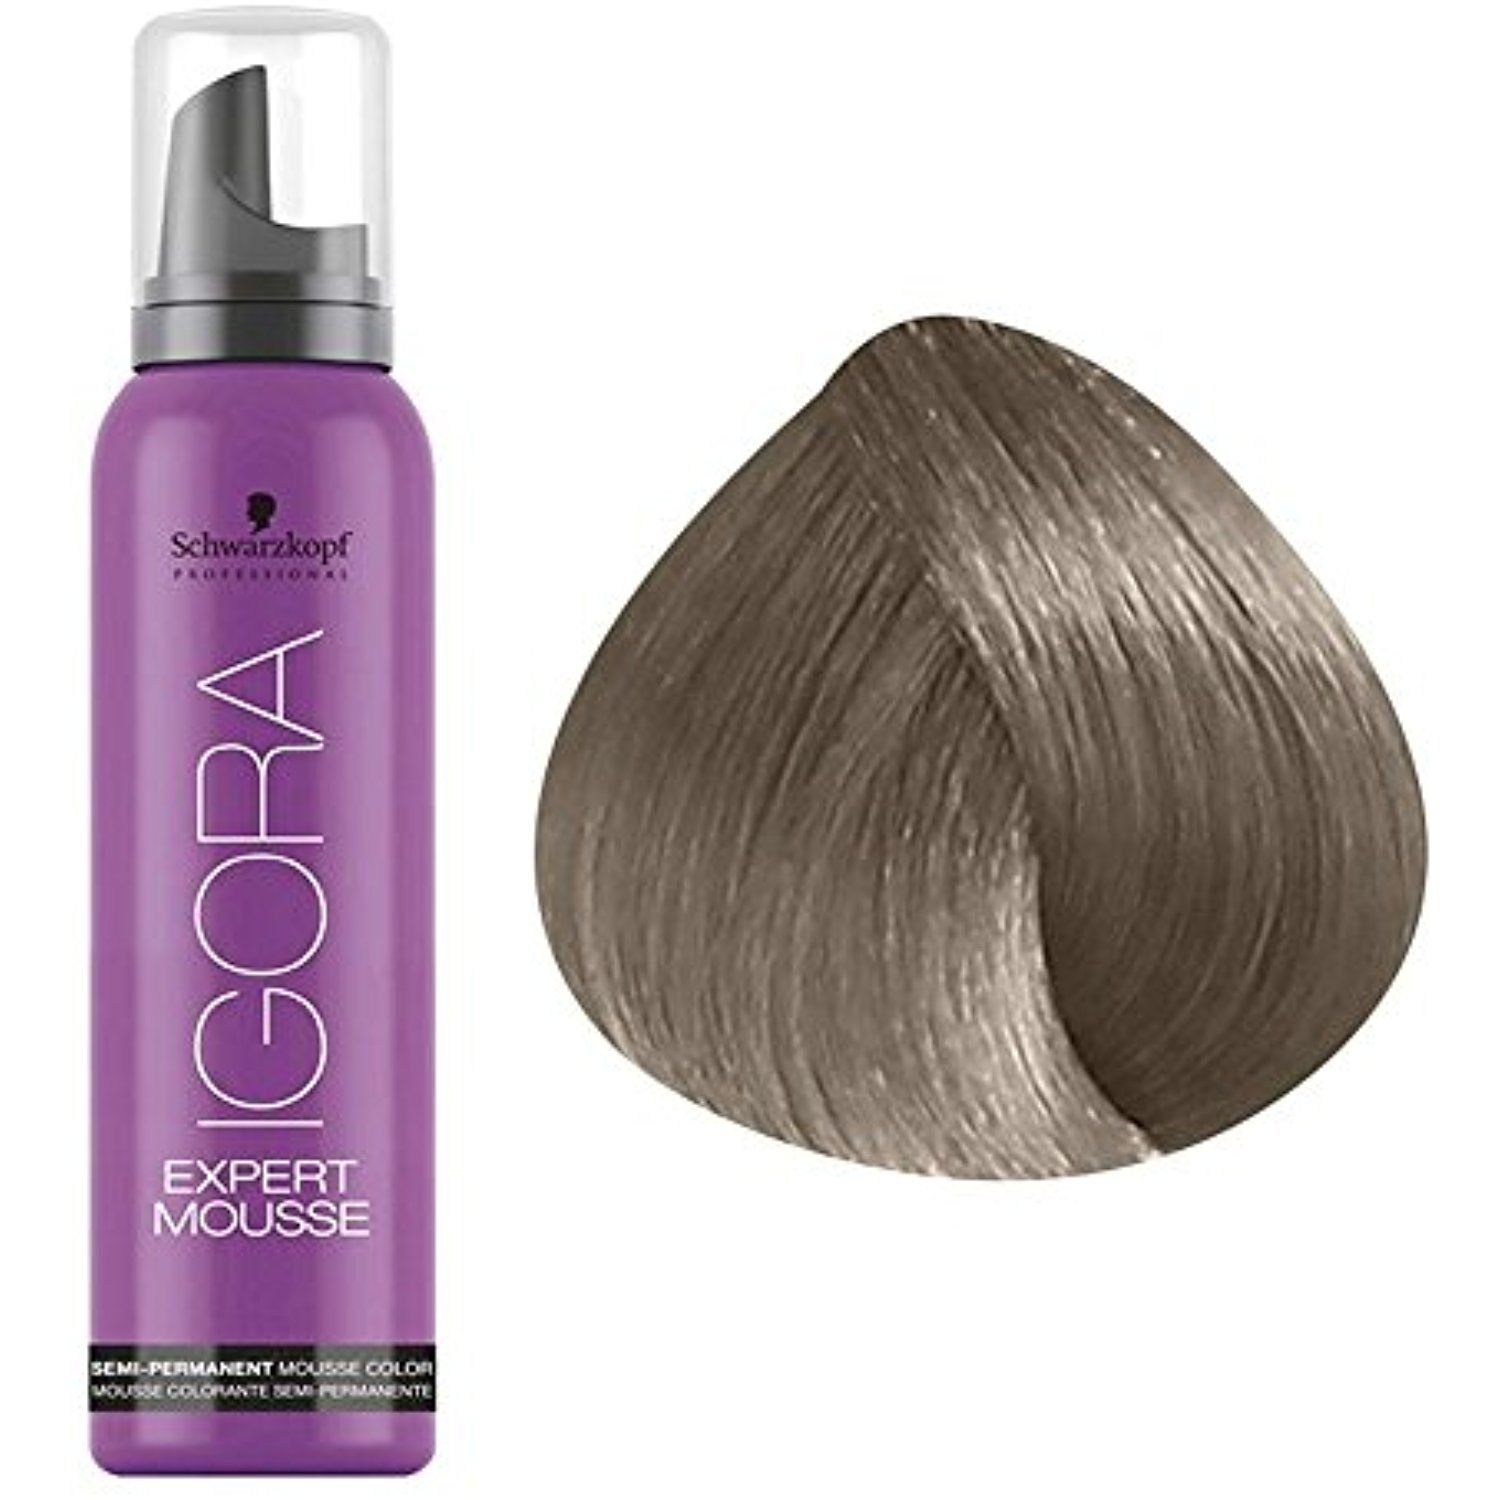 Amazon schwarzkopf igora expert mousse 7 5 medium blonde schwarzkopf igora expert mousse 8 1 light blonde cendre nvjuhfo Gallery